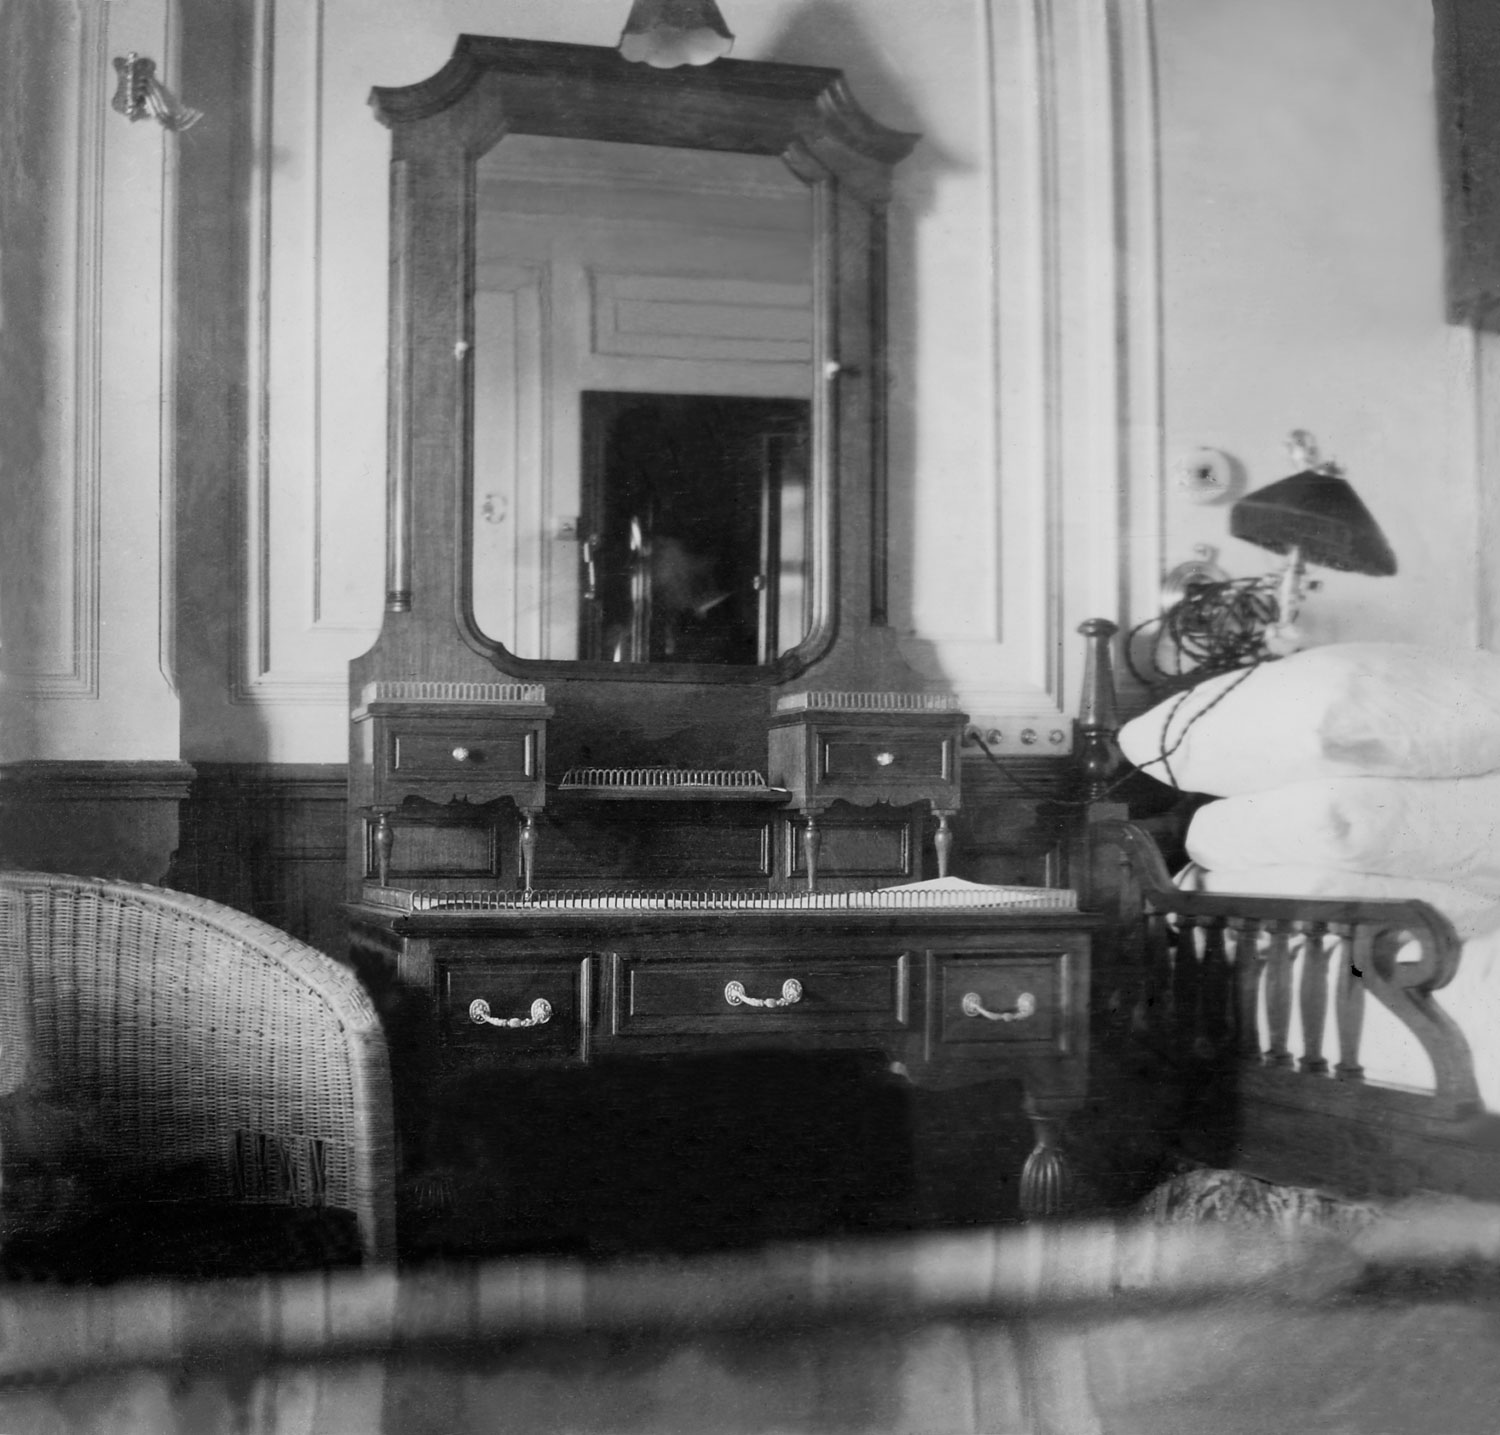 Father Browne's first class stateroom on the Titanic, 1912.